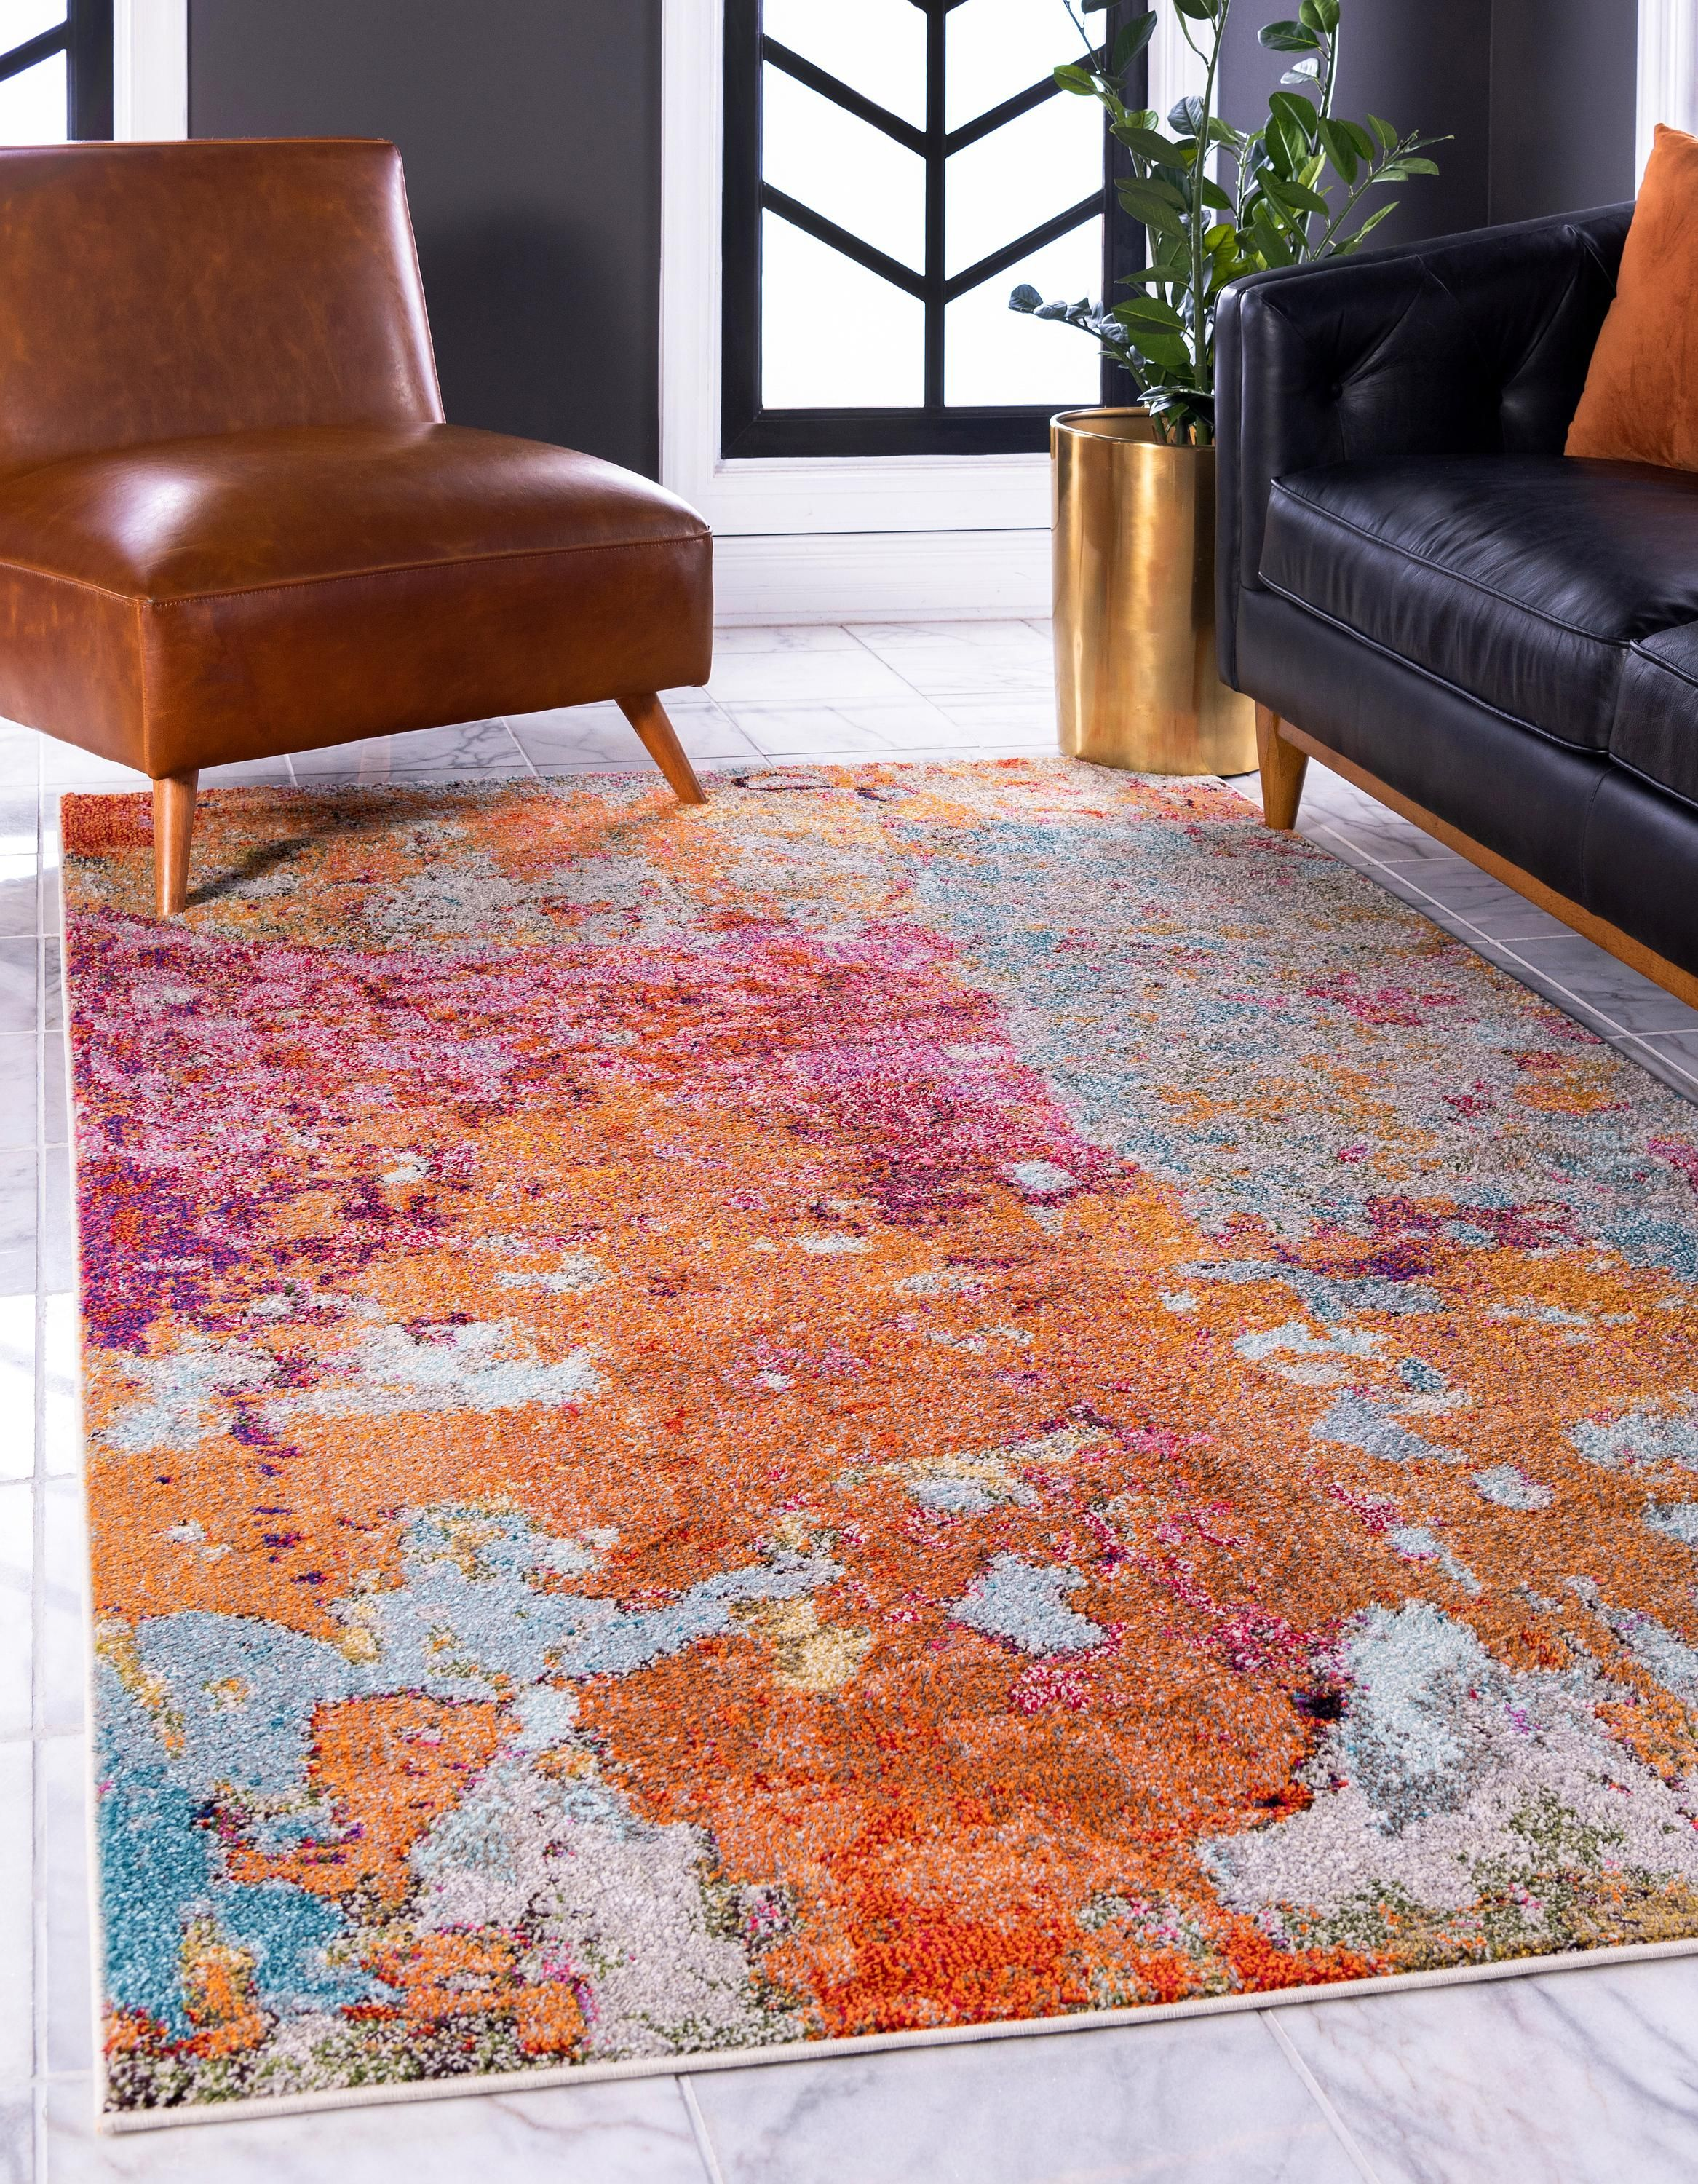 Multicolor 5 X 8 Spectrum Rug Sponsored Multicolor Spectrum Rug Sponsored Big Area Rugs Large Area Rugs Area Rugs